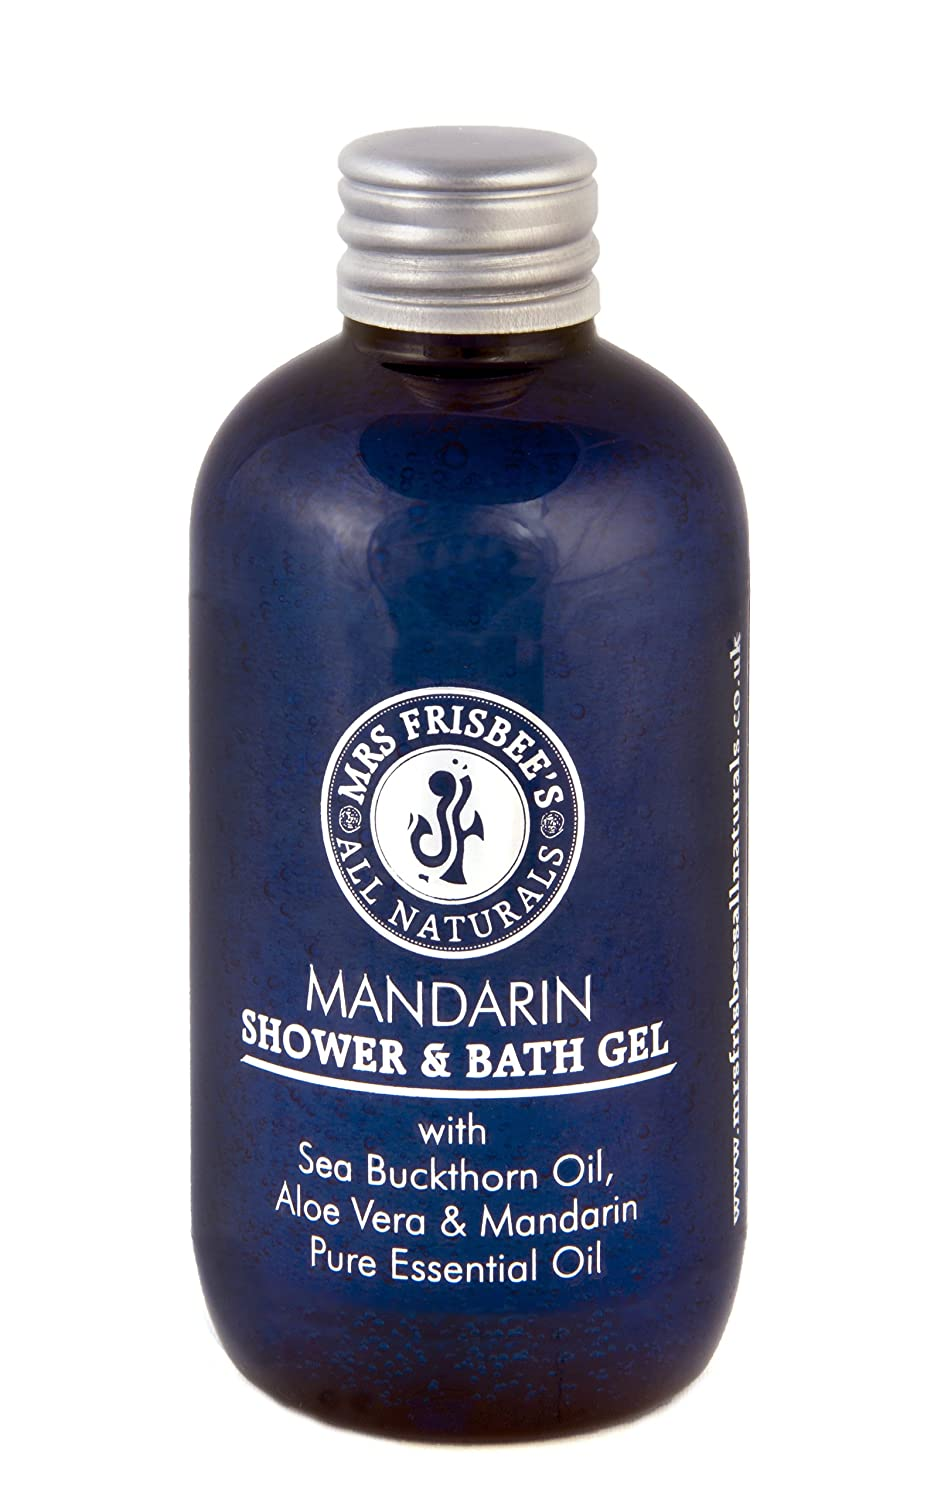 Mrs Frisbee's All Naturals Mandarin Shower Gel With Sea Buckthorn Oil and Aloe Vera 0700621914402